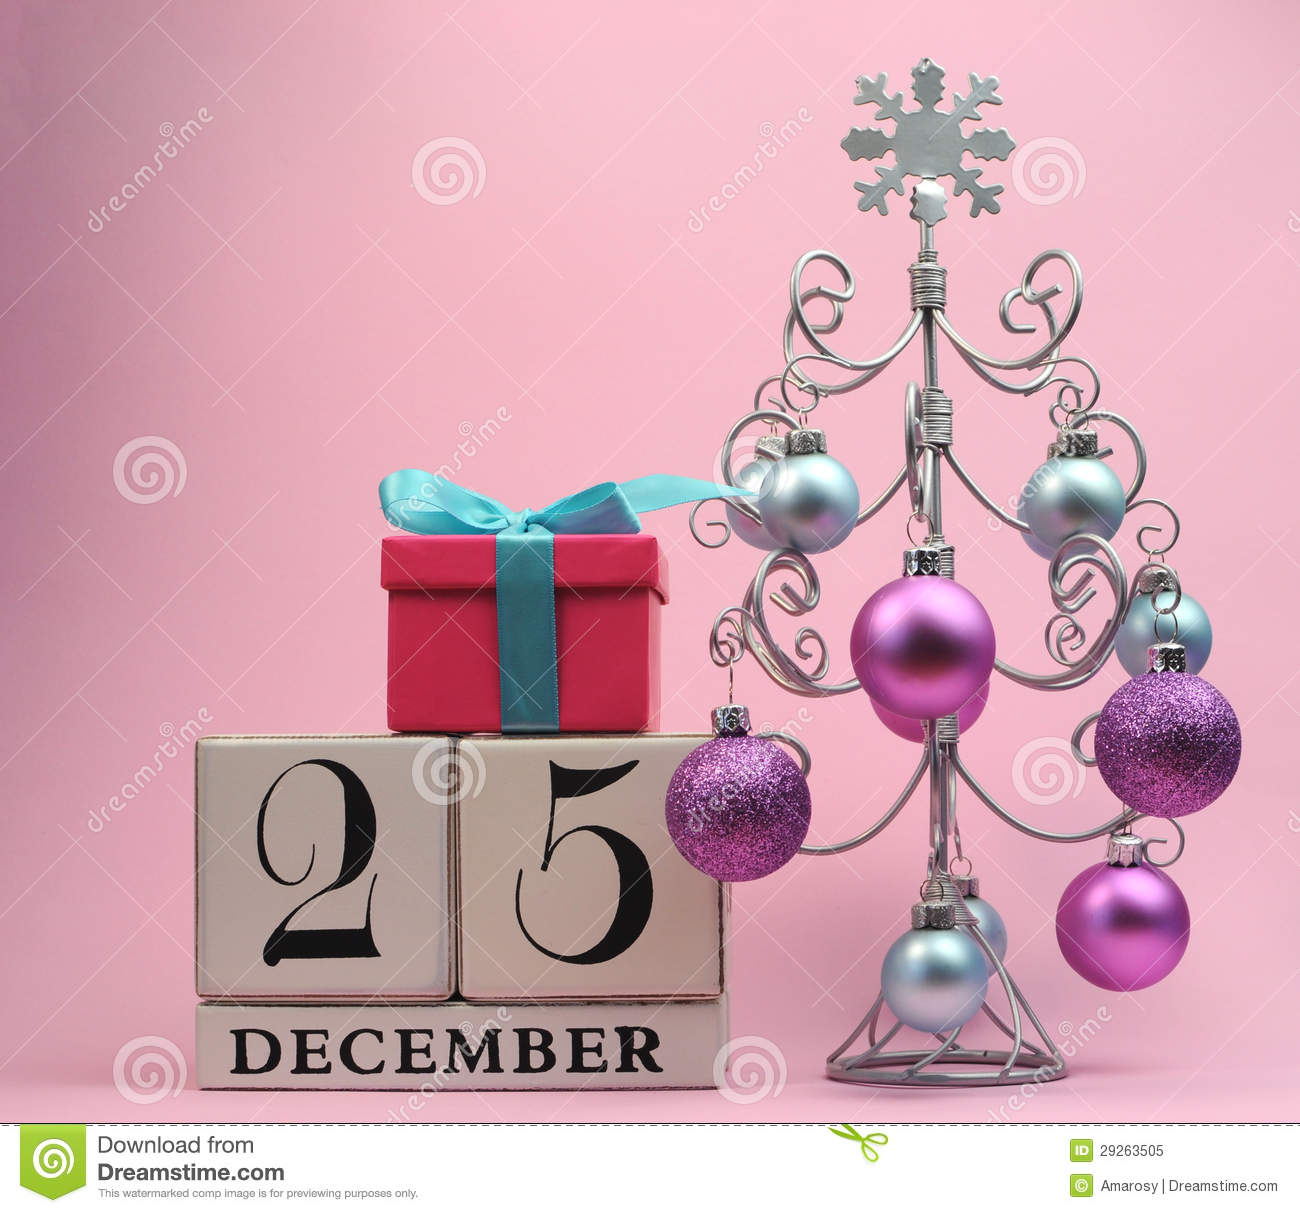 download pink and blue theme save the date calendar for christmas day december 25